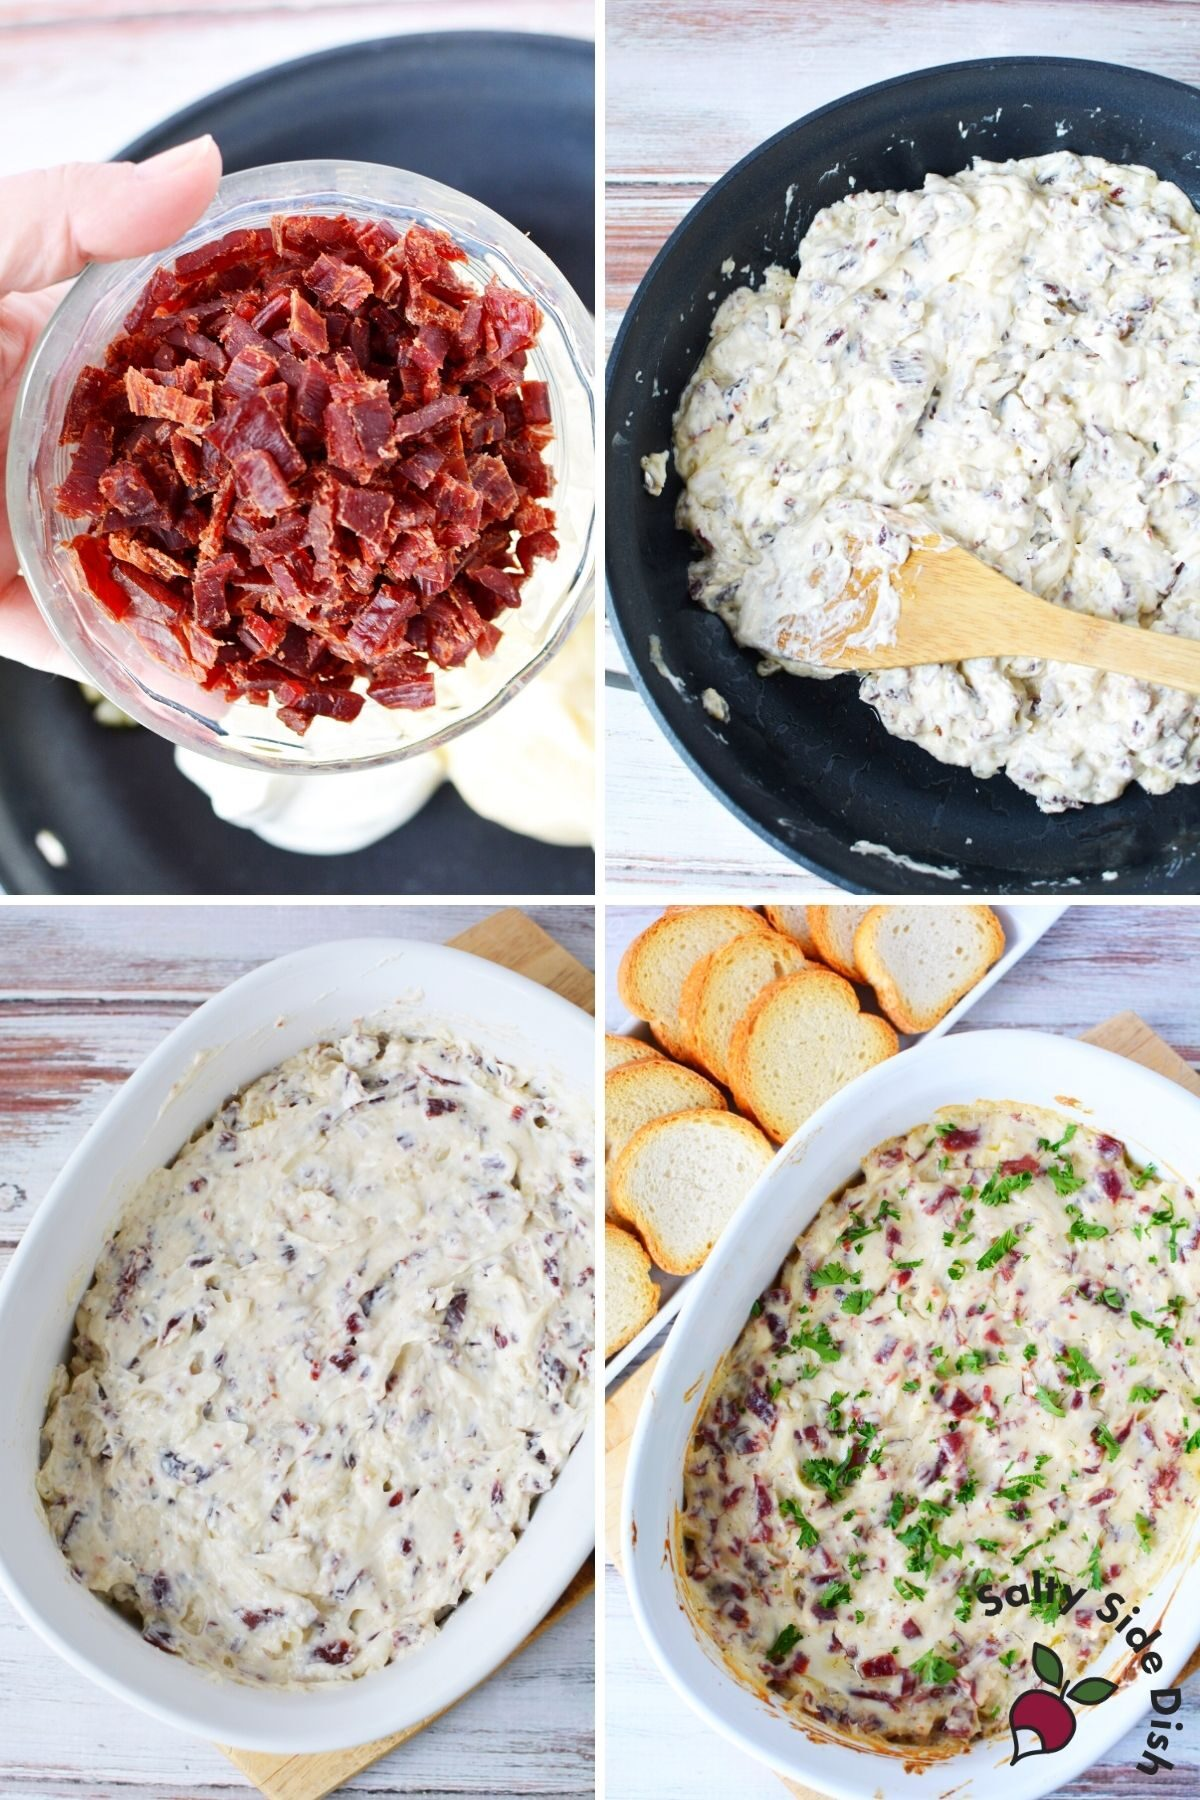 chipped beef dip ingredients added to a casserole dish